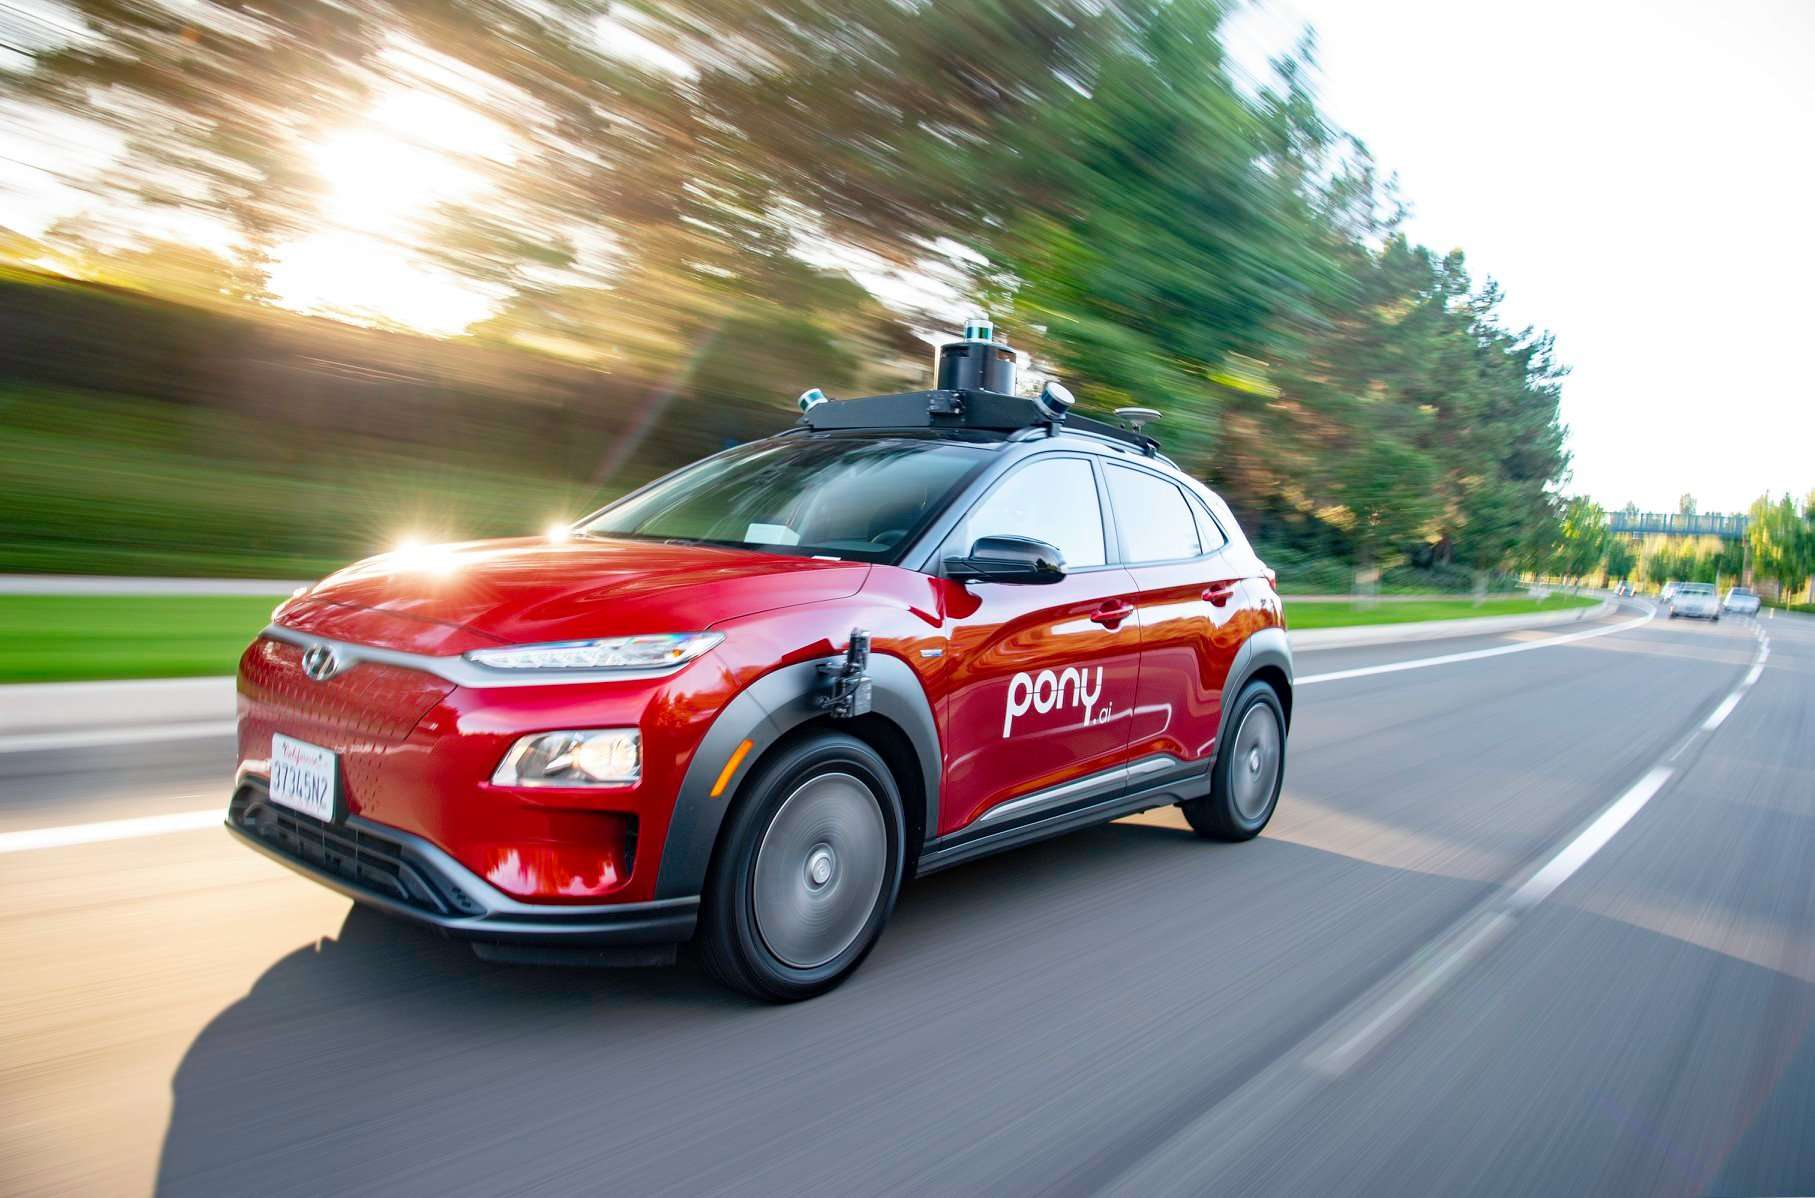 Pony.ai has Robotaxi services in Guangzhou, Shanghai, Beijing, and Irvine and Fremont in California with a fleet of about 200 autonomous vehicles. Late last year, the startup raised $267 million at a valuation of $5.3 billion.